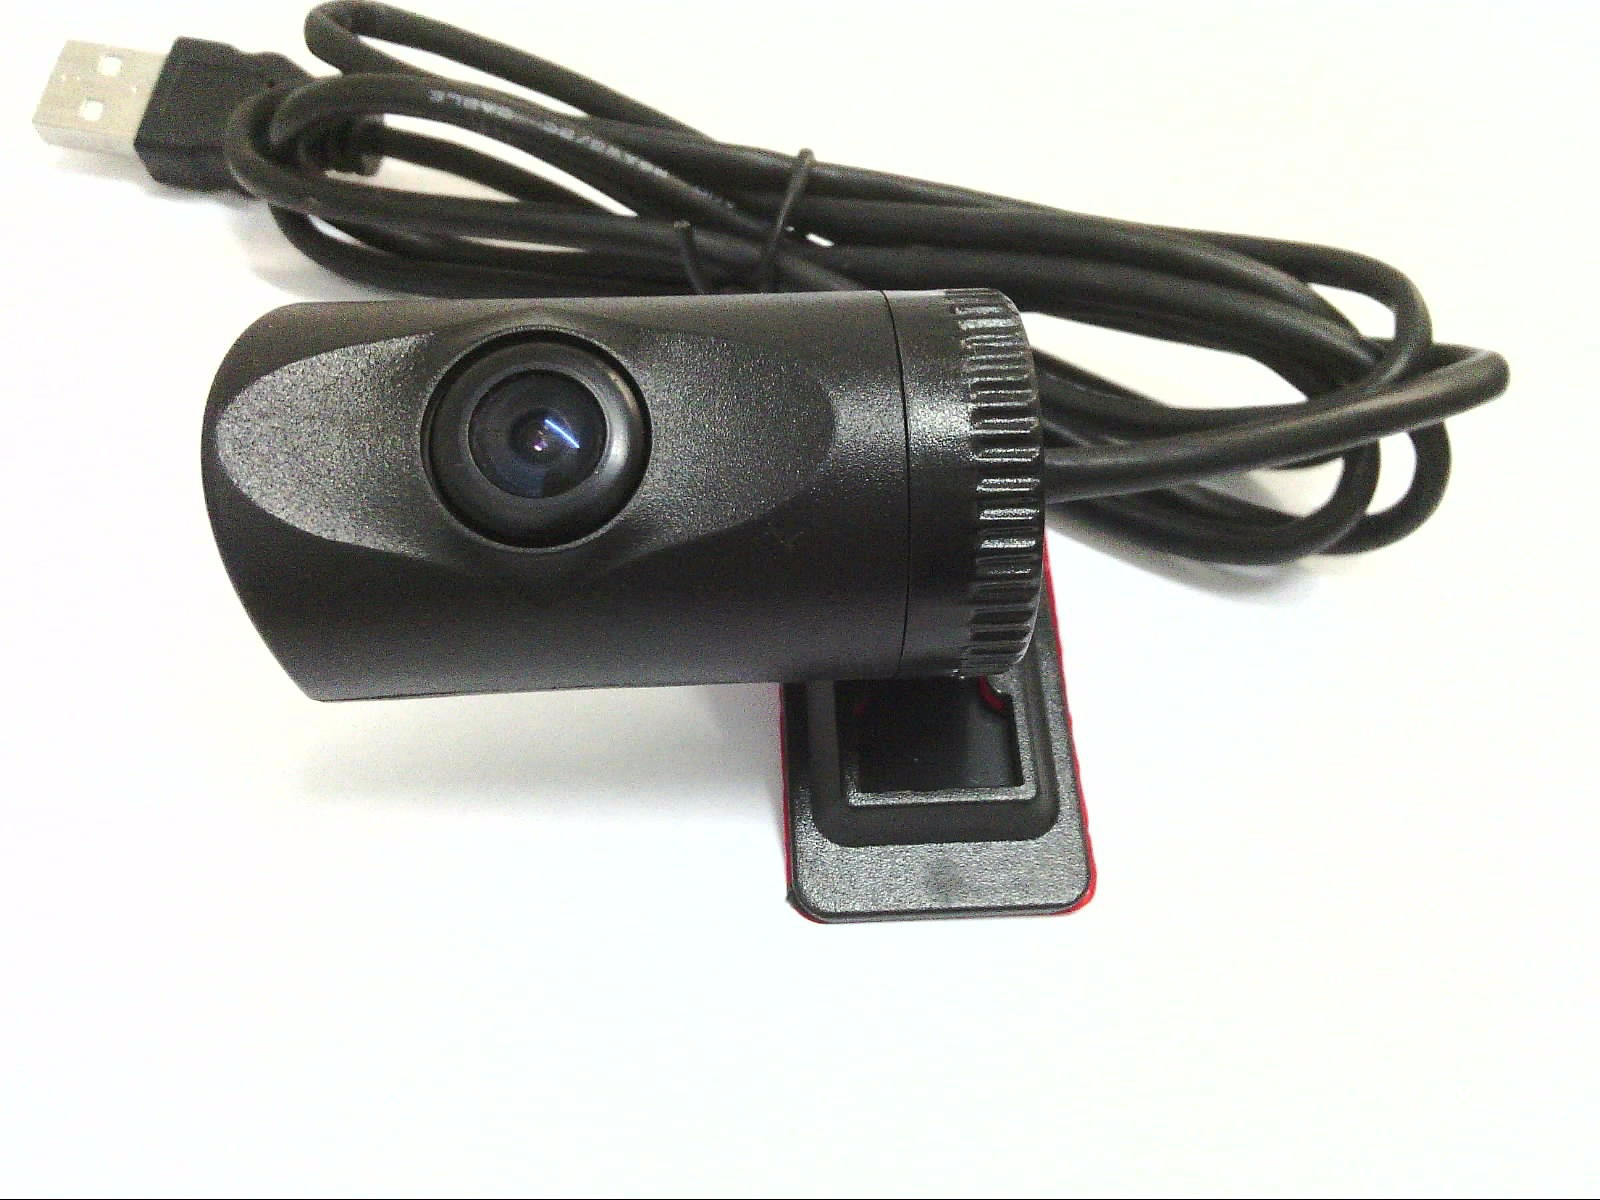 New Style USB On Board Camera Can Take Traveling Recorder And Navigation And Other PZ480